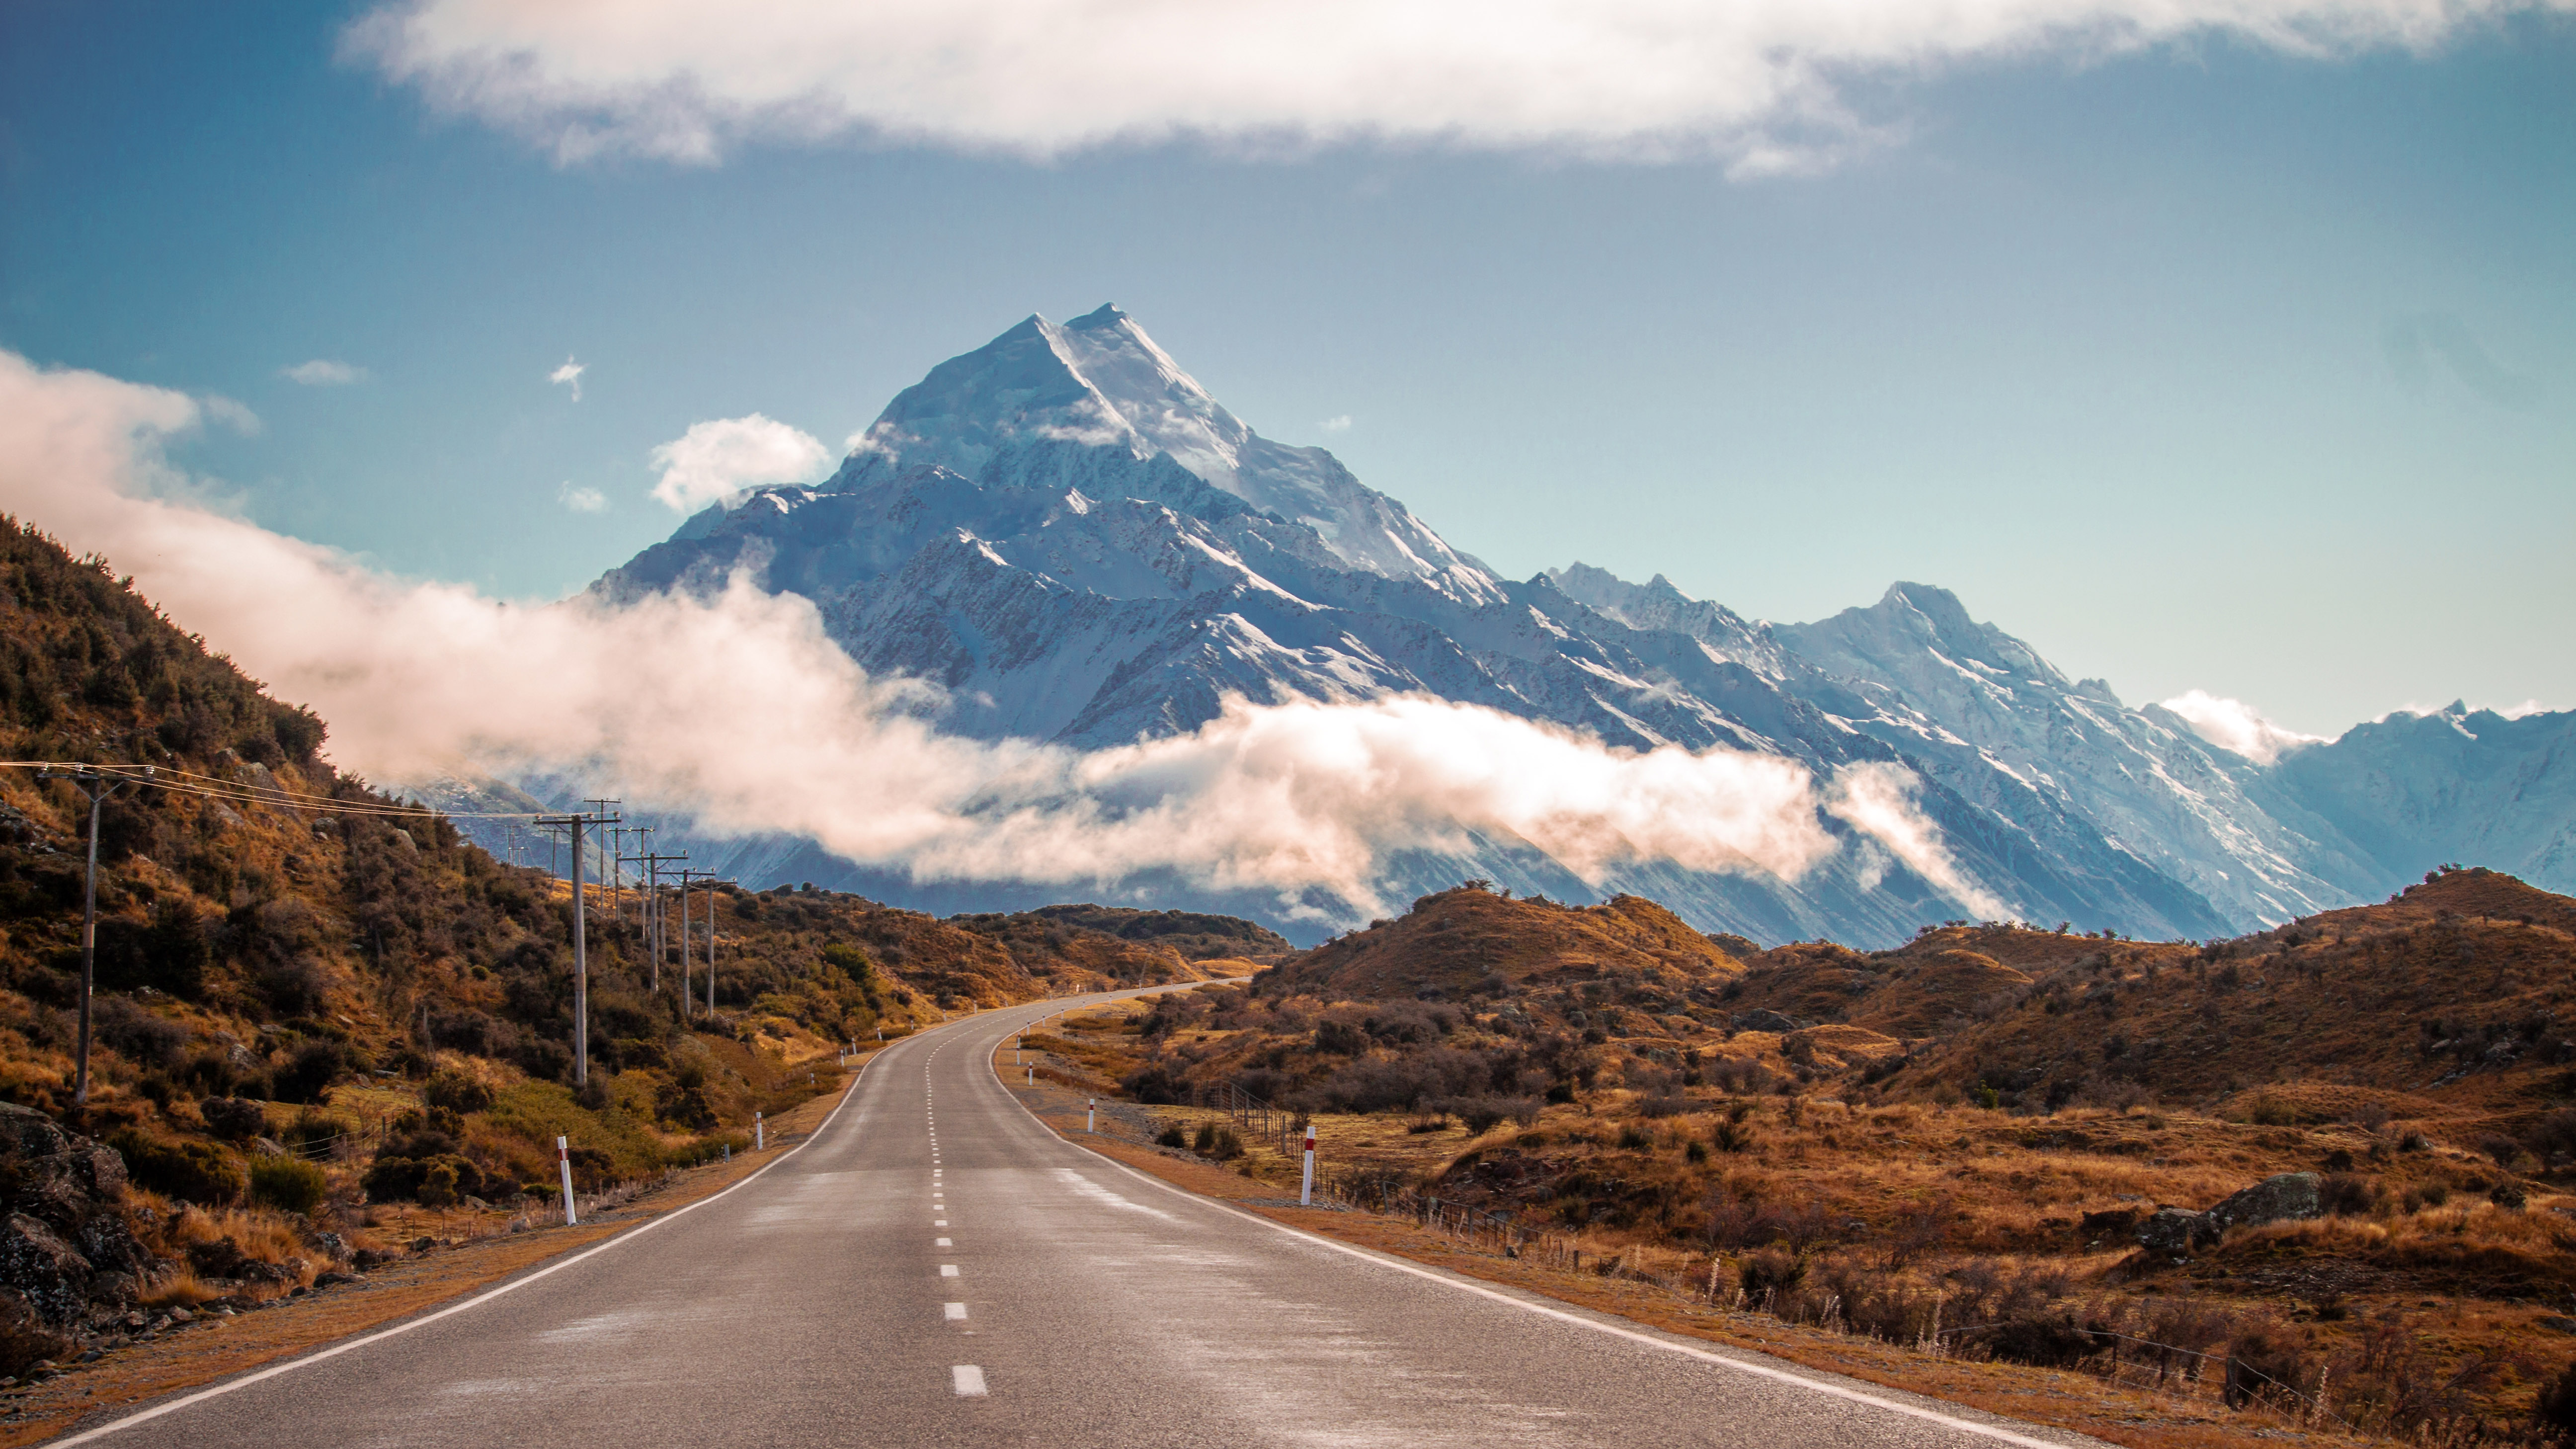 mountains landscape and road in new zealand image free